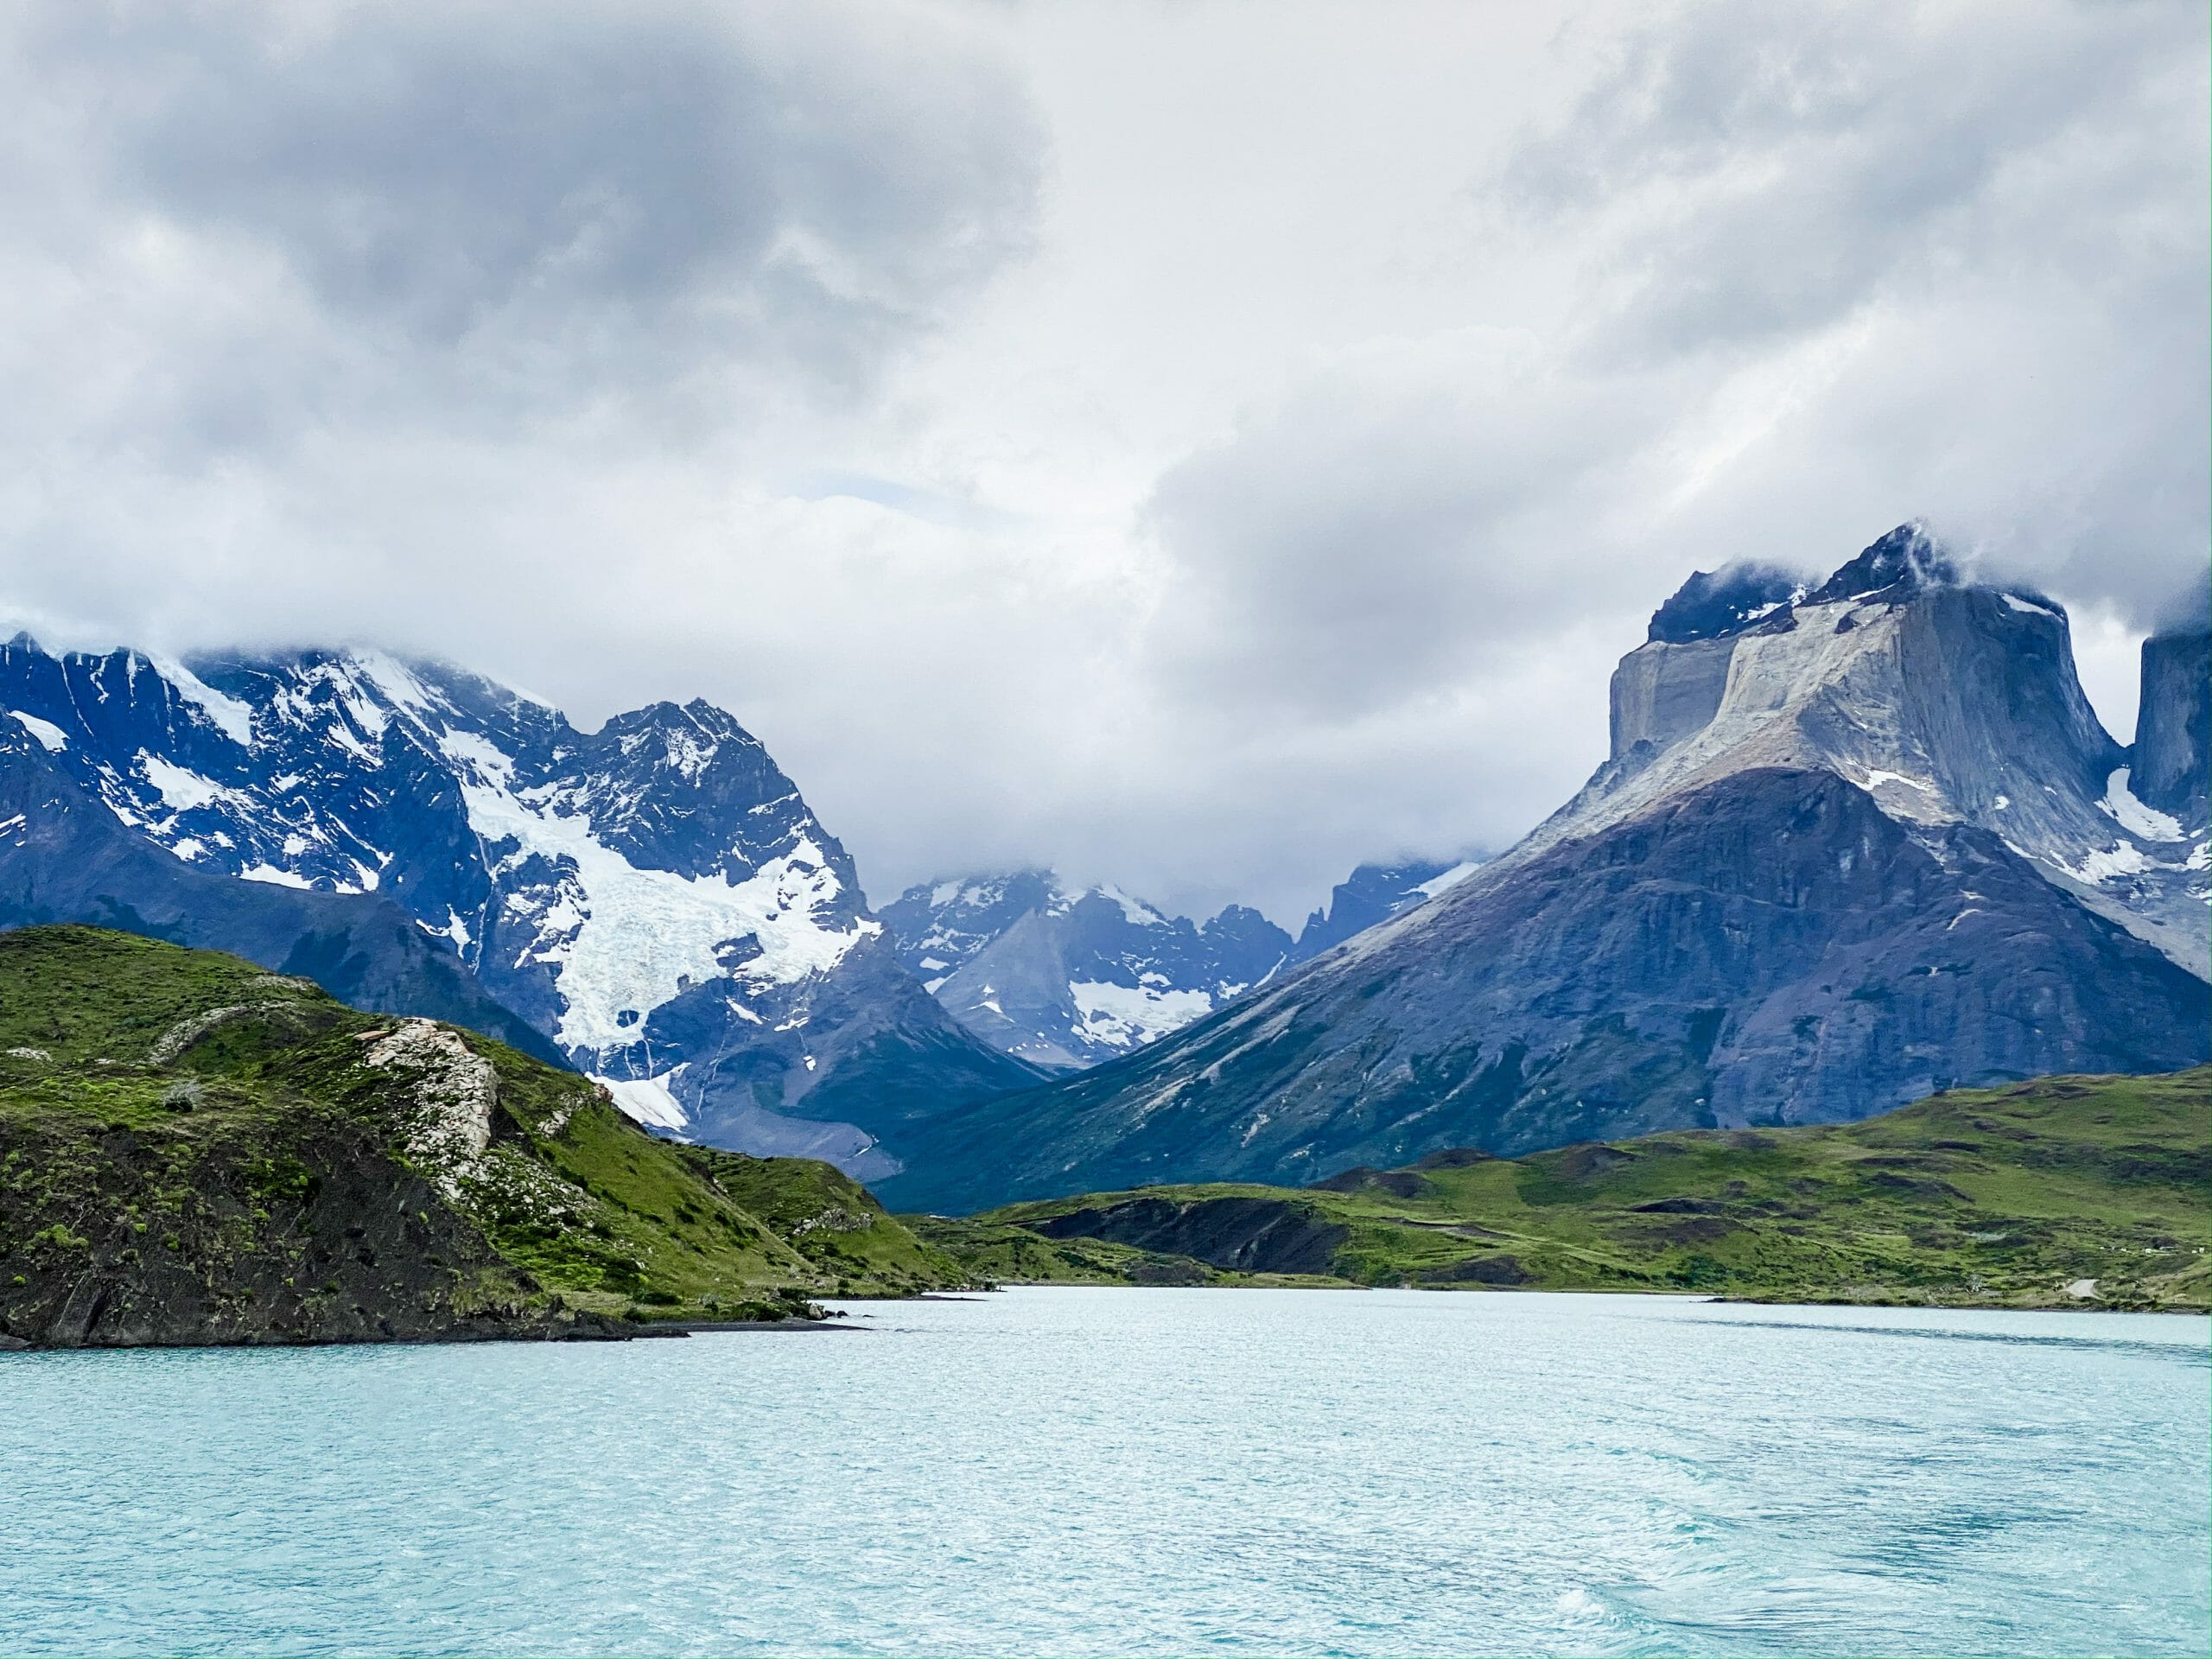 Ferry ride across Pehoe Lake from Pudeto to Paine Grande